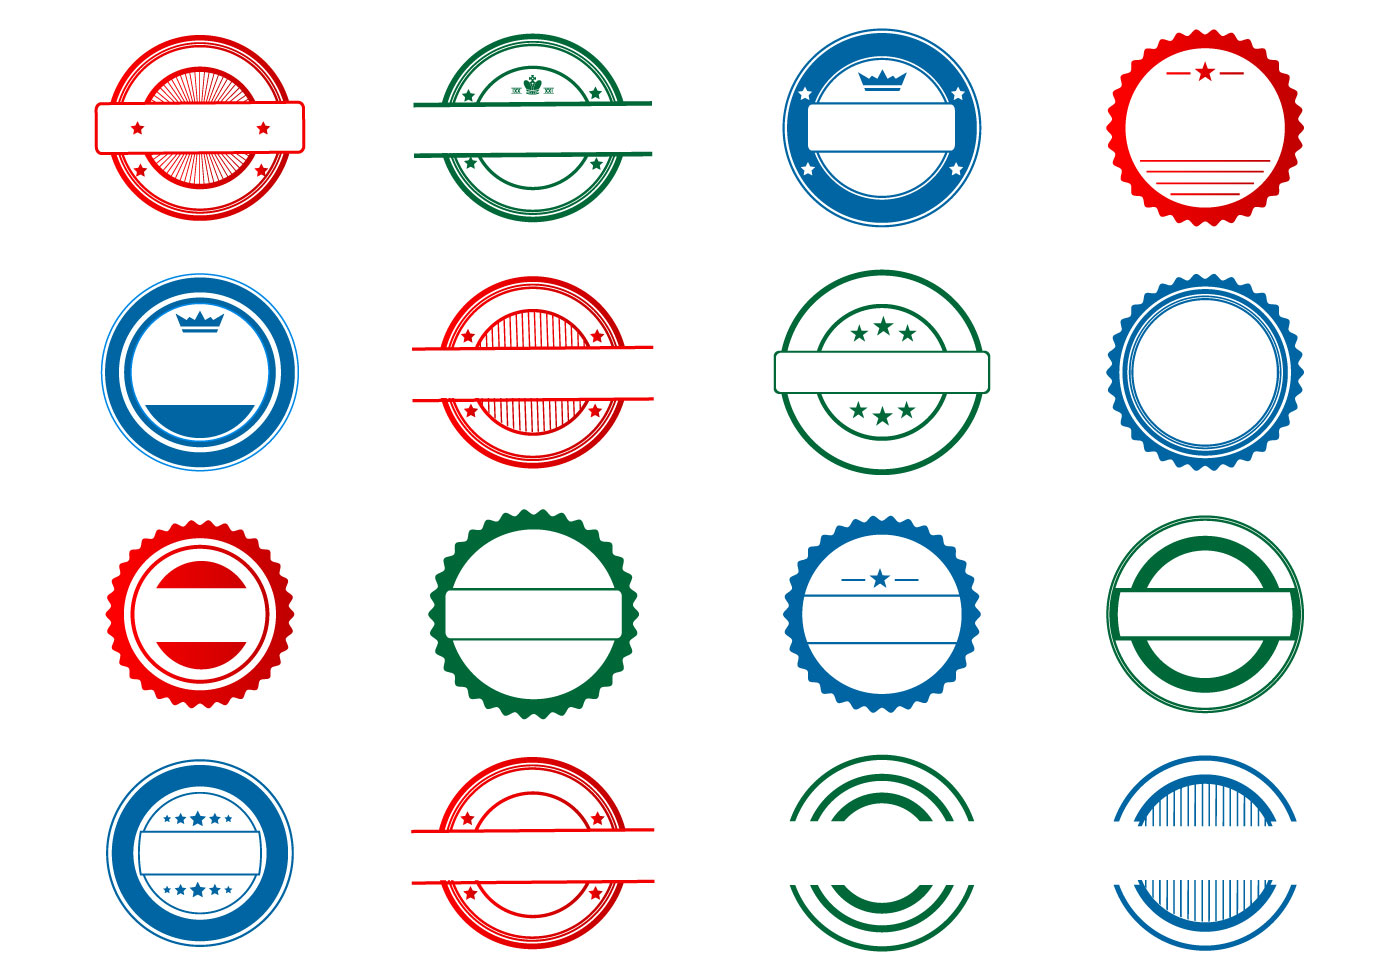 Template Stempel vector collection - Download Free Vector Art, Stock ...